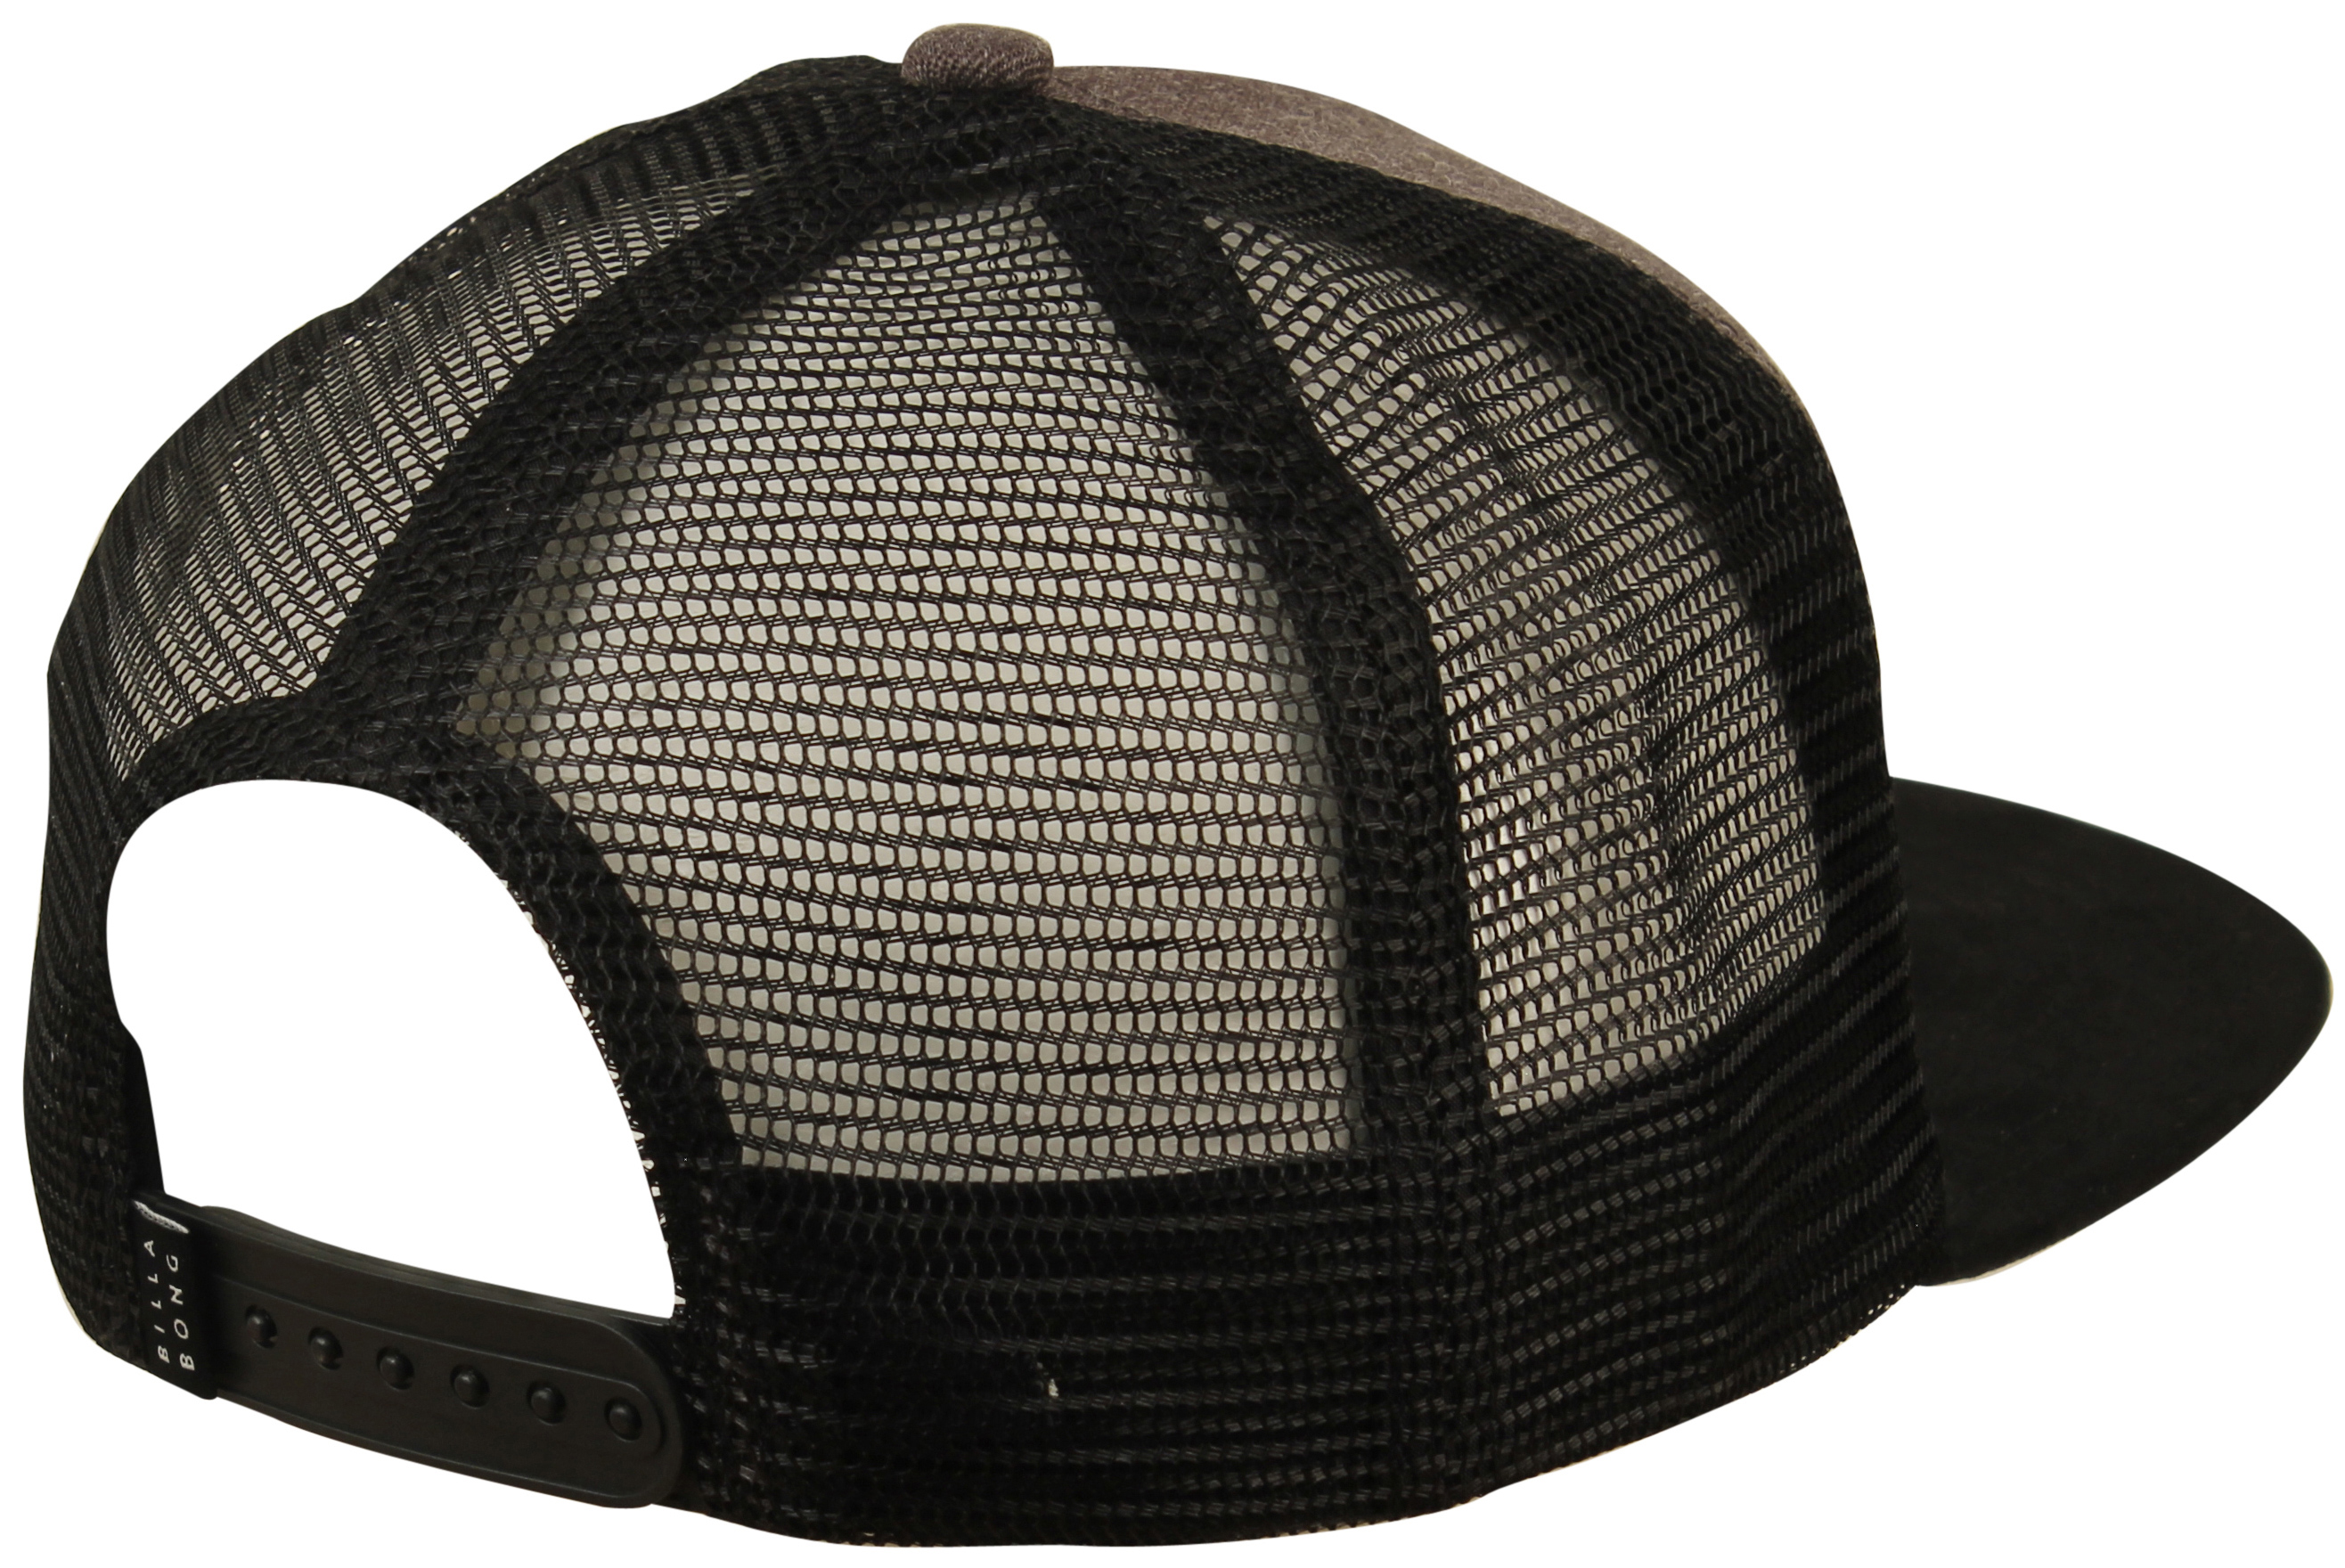 812fb40e281 Billabong Stacked Trucker Hat - Black Heather For Sale at Surfboards ...